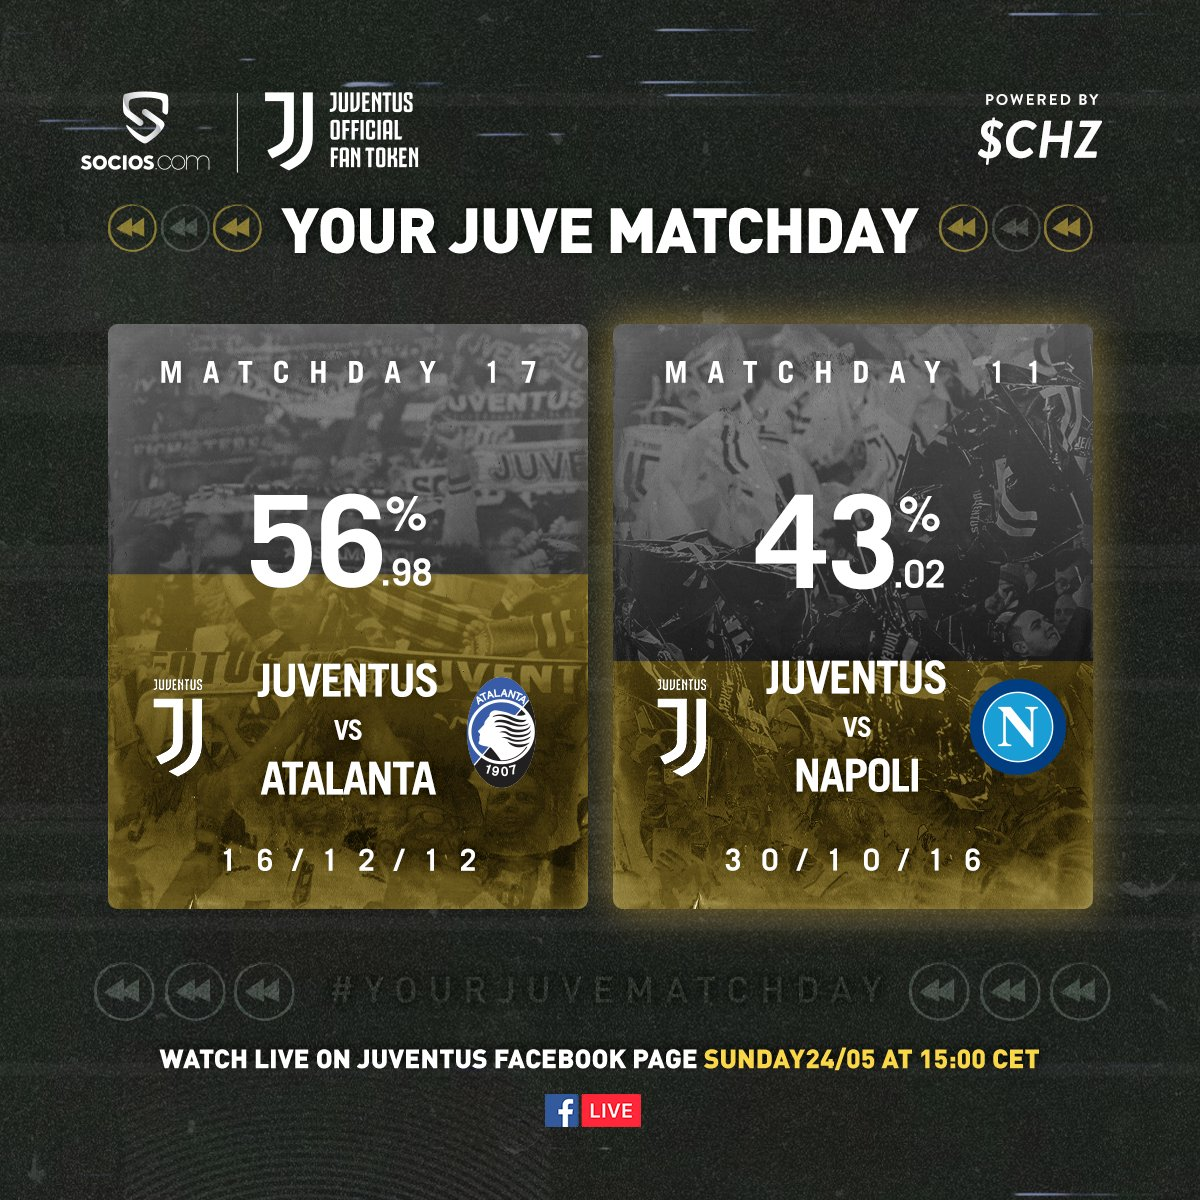 #JuveAtalanta wins The FINAL #YourJuveMatchday is here! ⚪️⚫️  Thanks for voting on the @socios app ➡️ https://t.co/AItpTdQj6v   WATCH ▶️ on https://t.co/wM2lV8RheP today at 15:00 CEST https://t.co/ez2A24NRS3